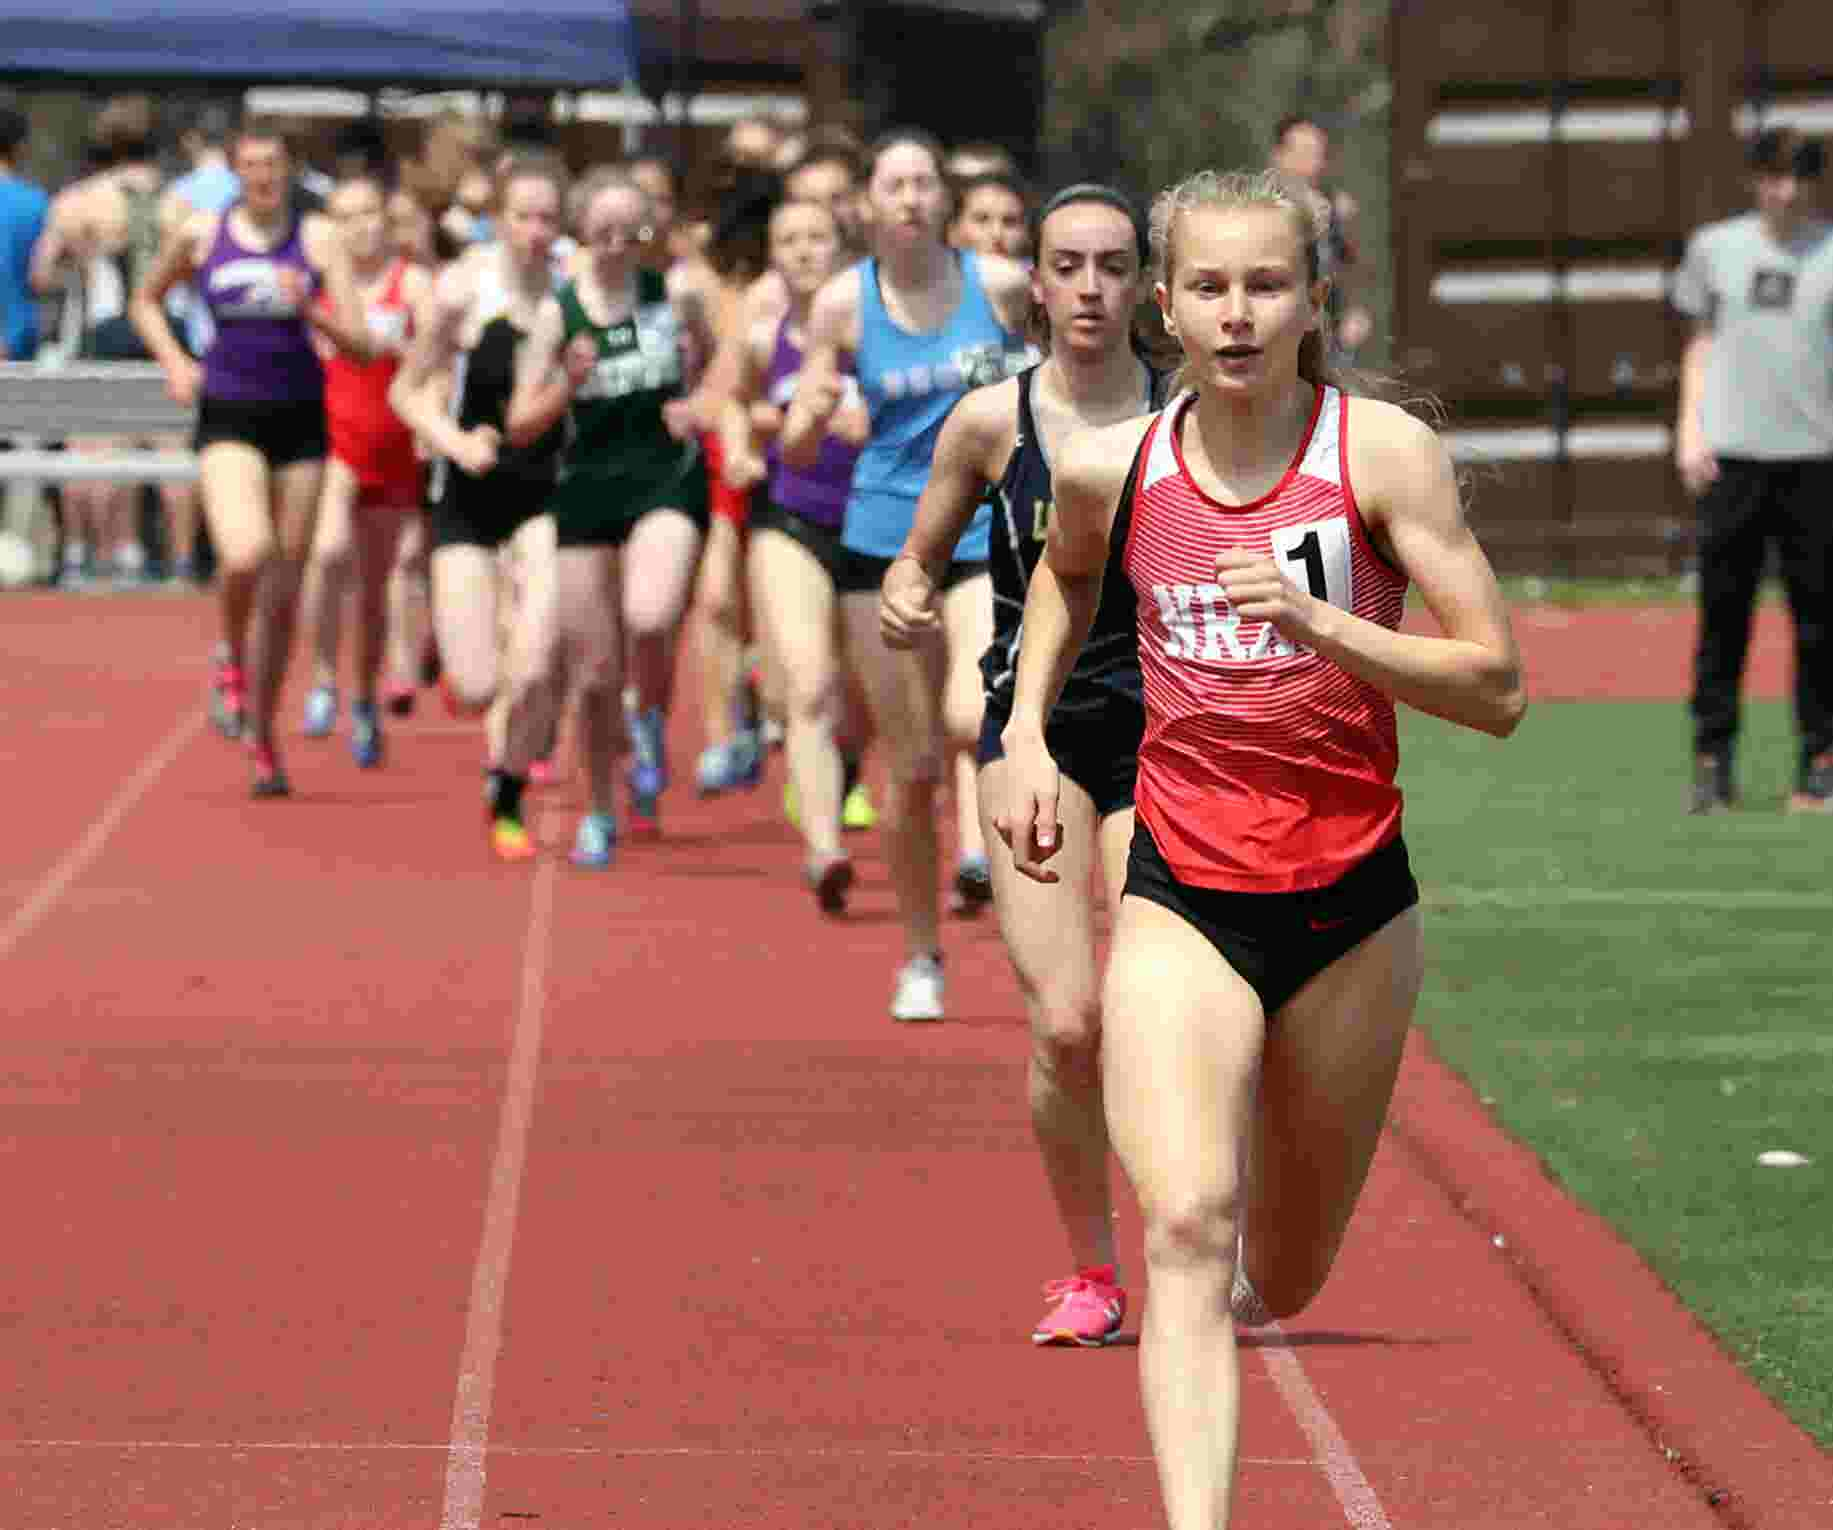 Video Katelyn Tuohy Sets Meet Record At Gold Rush Track Invitational